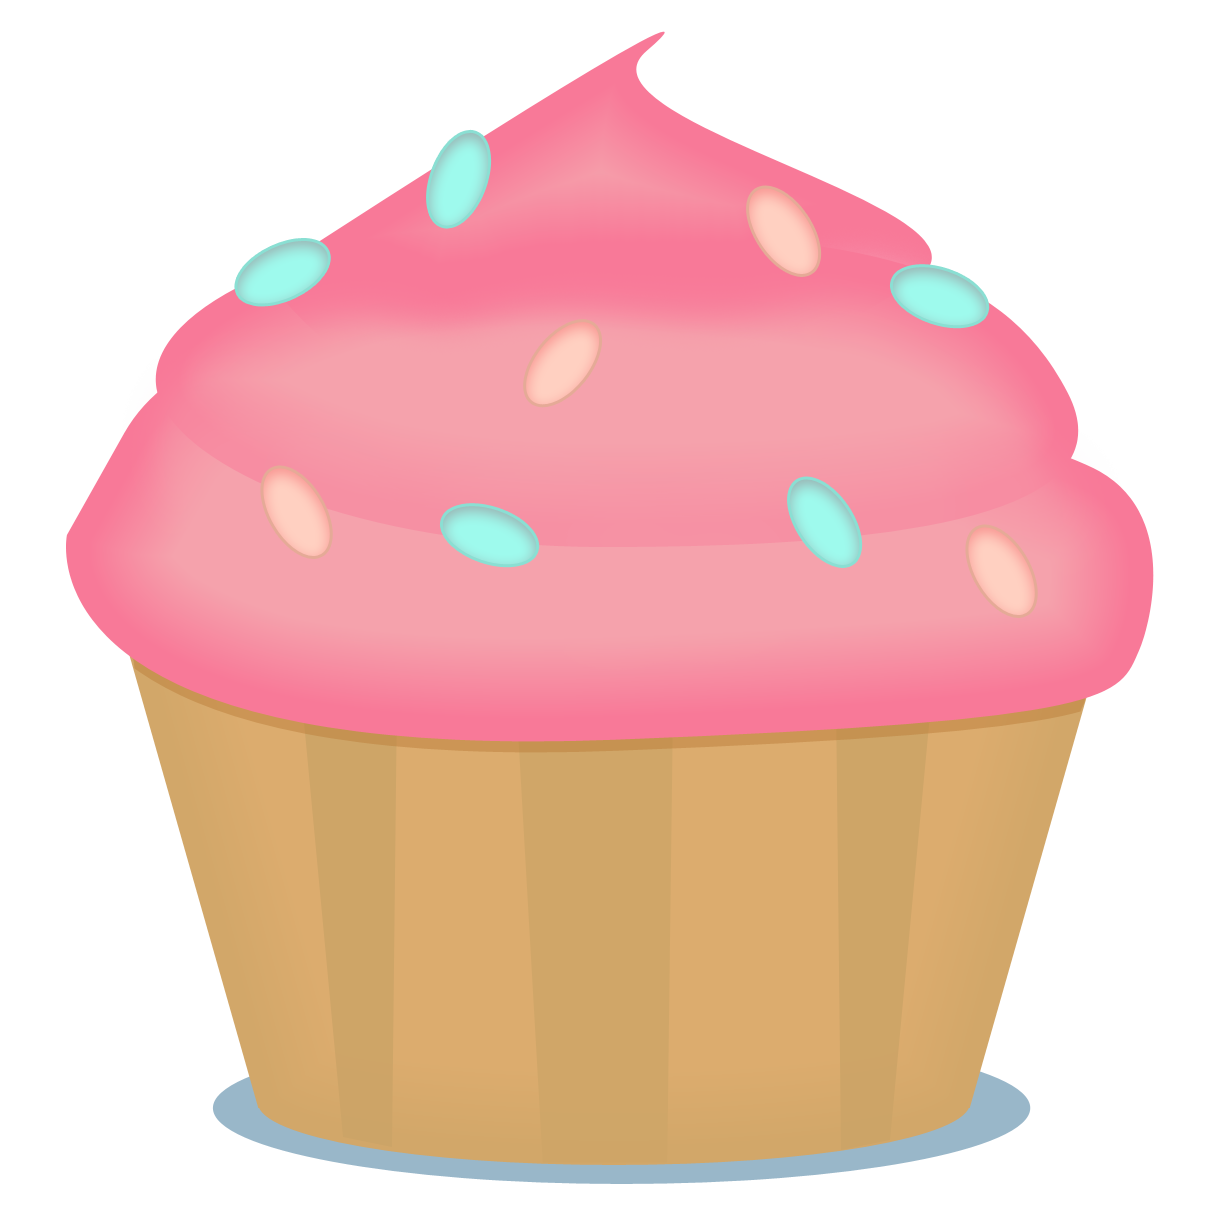 Brownie clipart cupcake Saliva Art Download on Clip